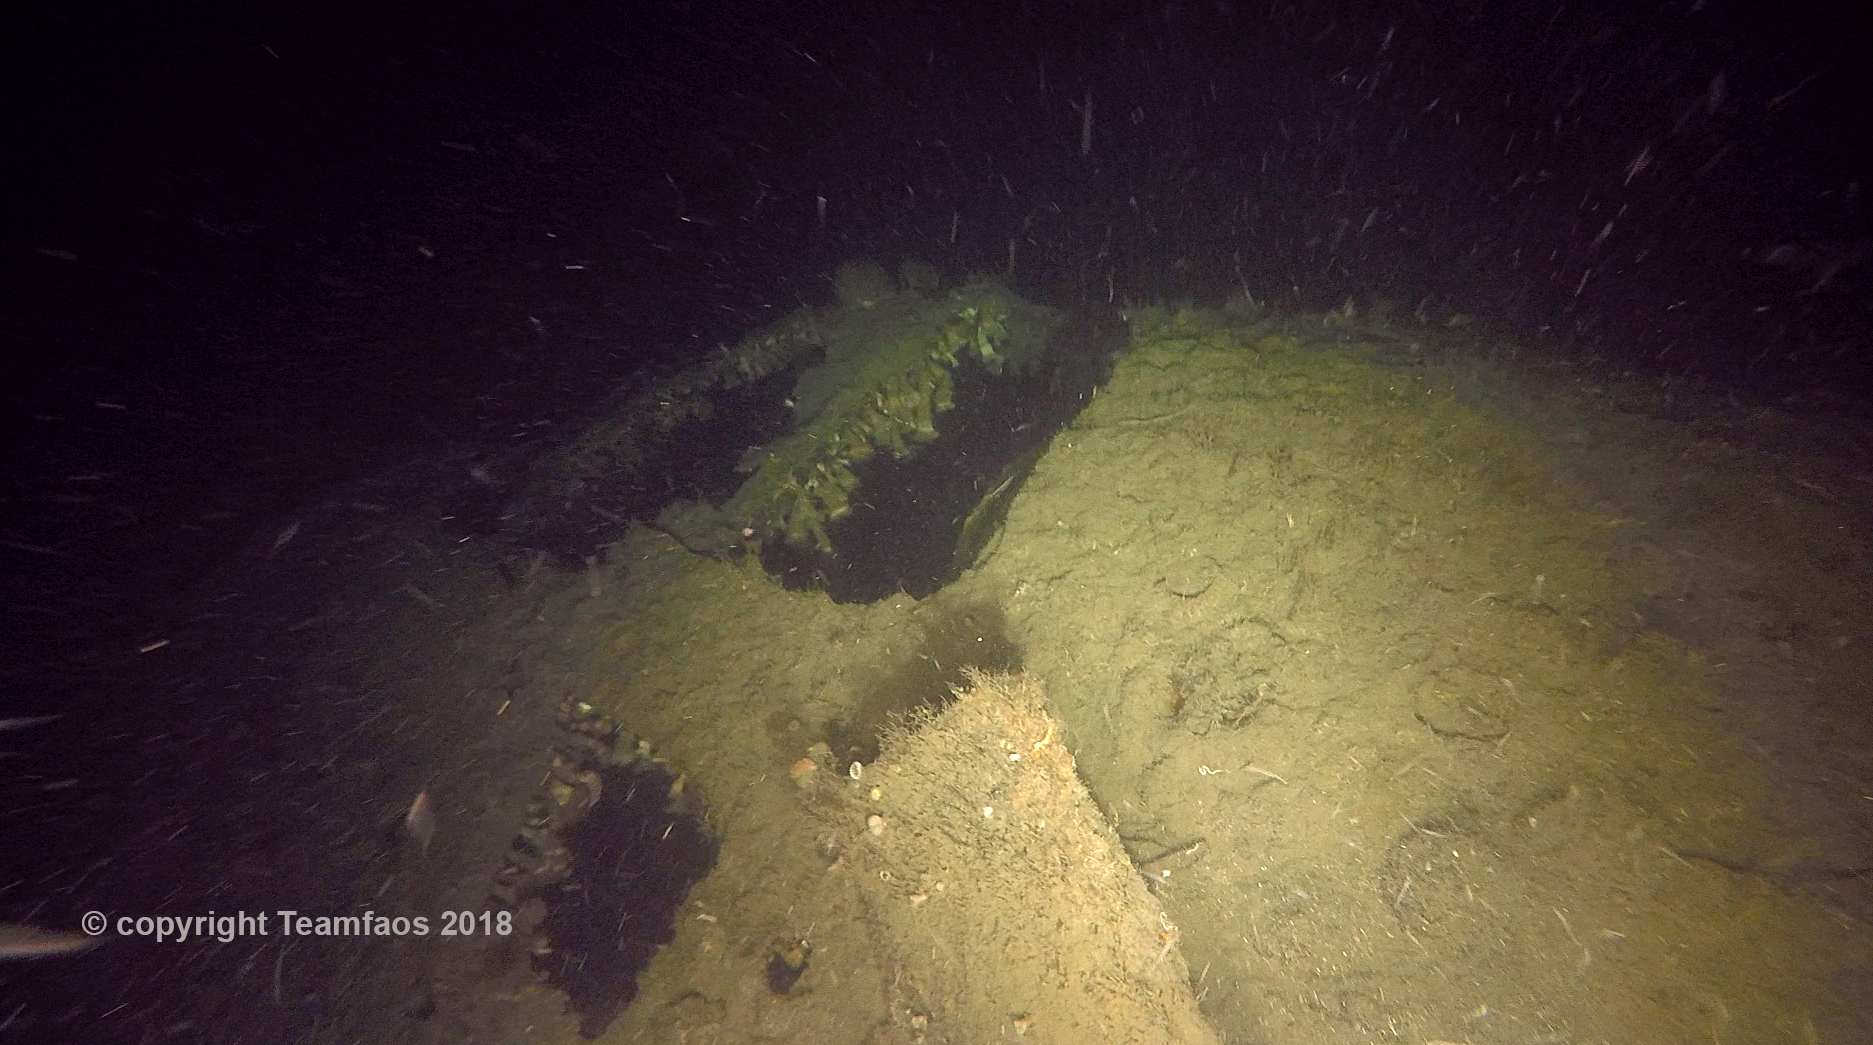 The WW2 wreck finally had its story told: The documentary